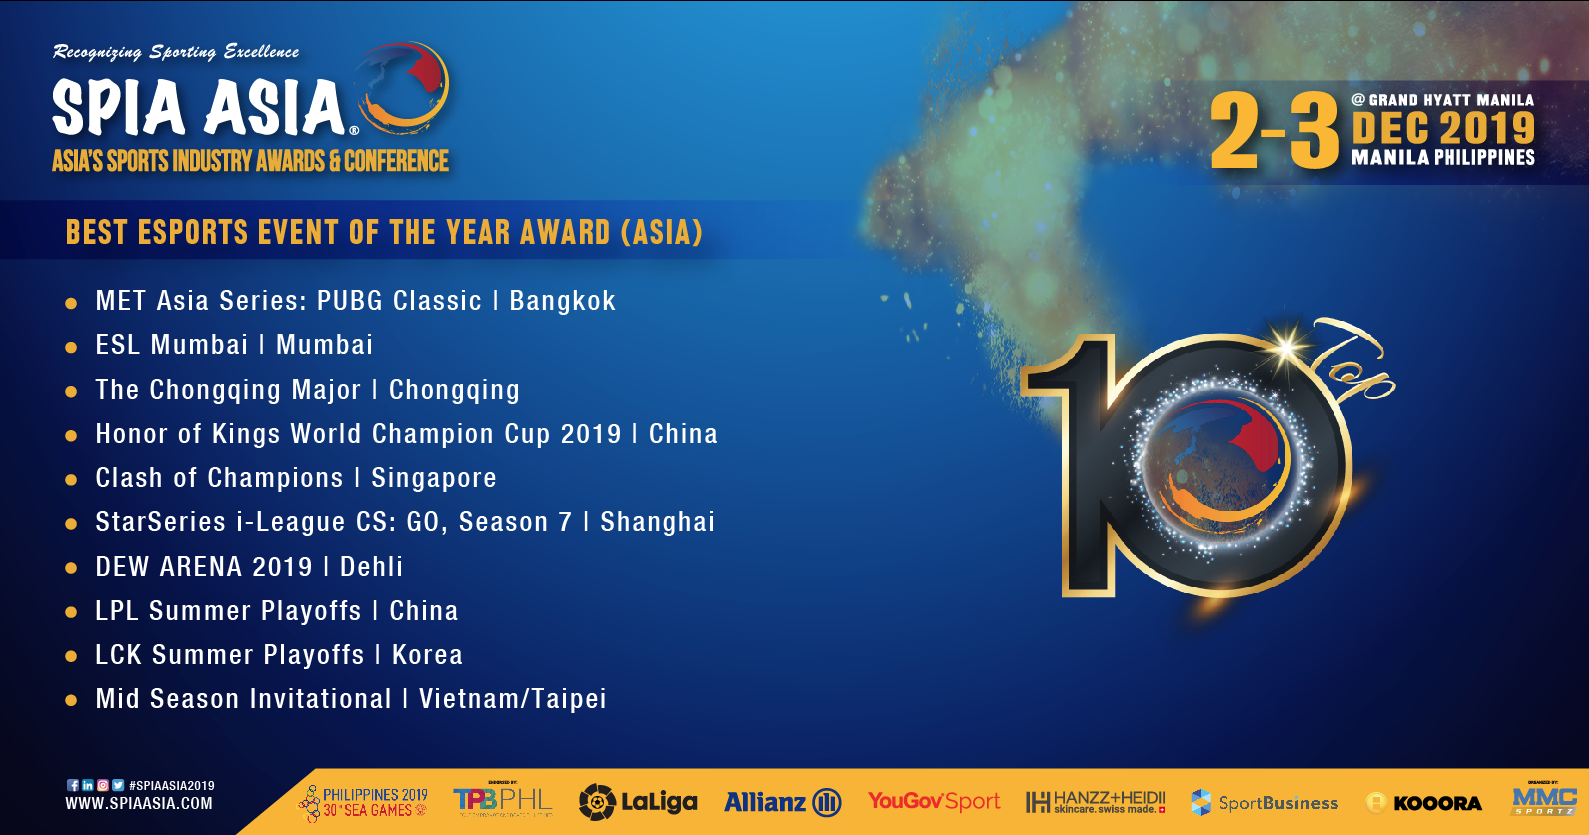 SPIA Asia Awards Best Esports Events